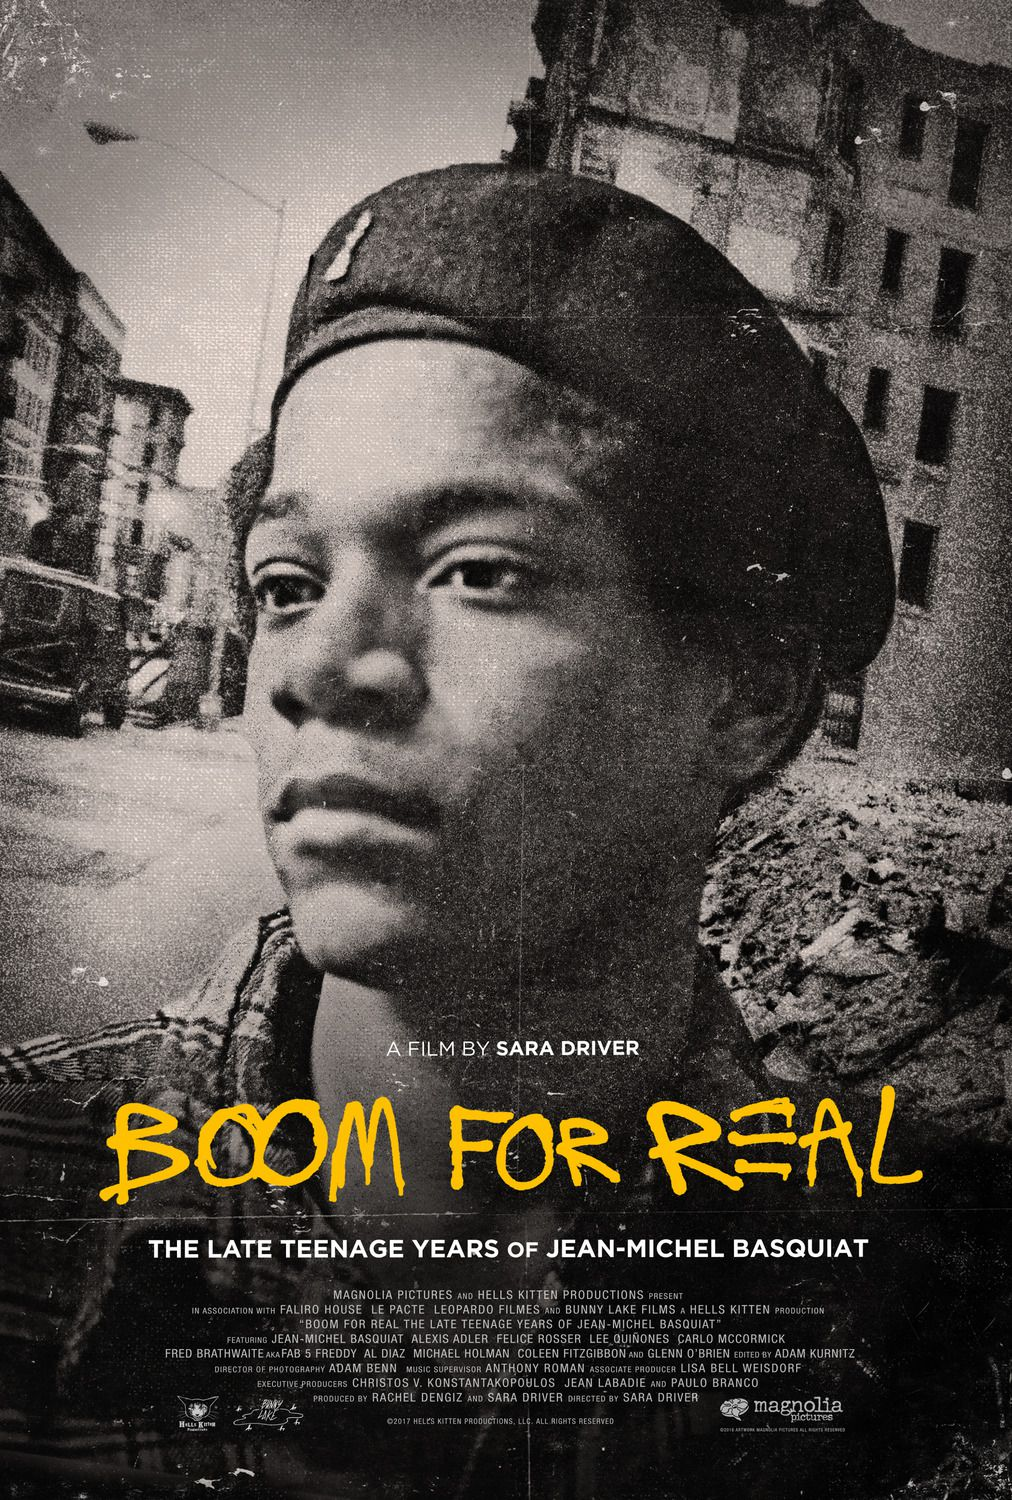 Boom for Real the Late Teenage Years of Jean-Michel Basquiat (2018) film poster